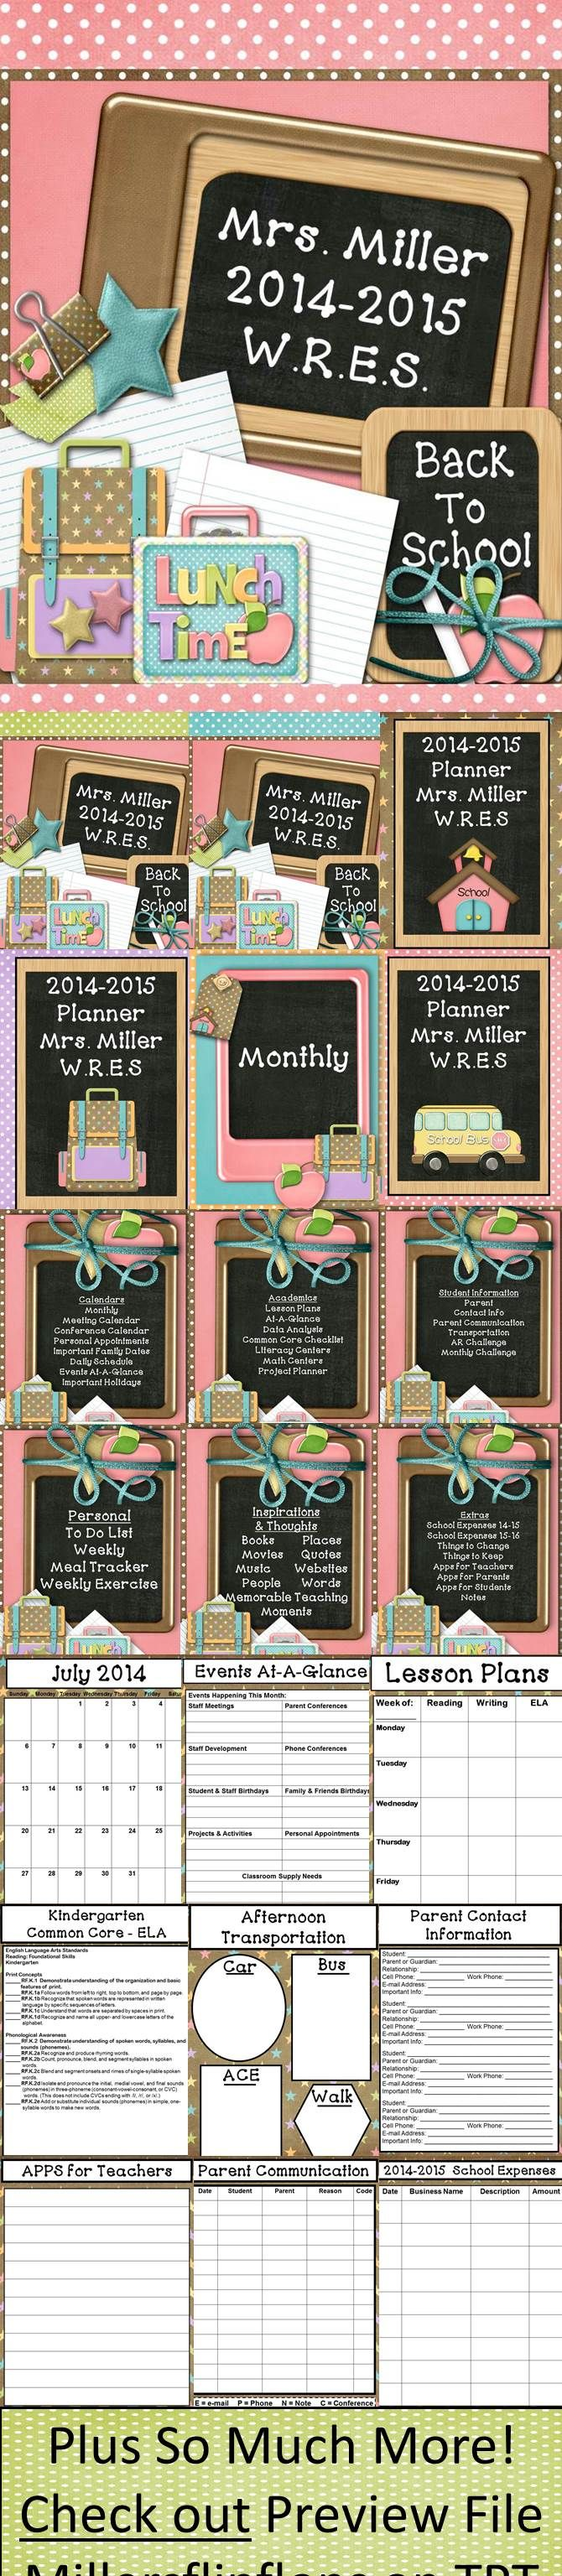 BRAND NEW DESIGN - Ultimate Teacher Planner 2014-2015, Beautiful Pastel School Fun Theme. Everything a Teacher Could Want All in One Place. This 281-page ULTIMATE TEACHER PLANNER is a teacher's dream come true! Through many hours of preparation, I am now offering this great FULLY EDITABLE organizational tool to teachers worldwide. Lots of choices to make this planner truly work for you, all in one place! Too many things to list! Go check it out! Miller's Flip Flops